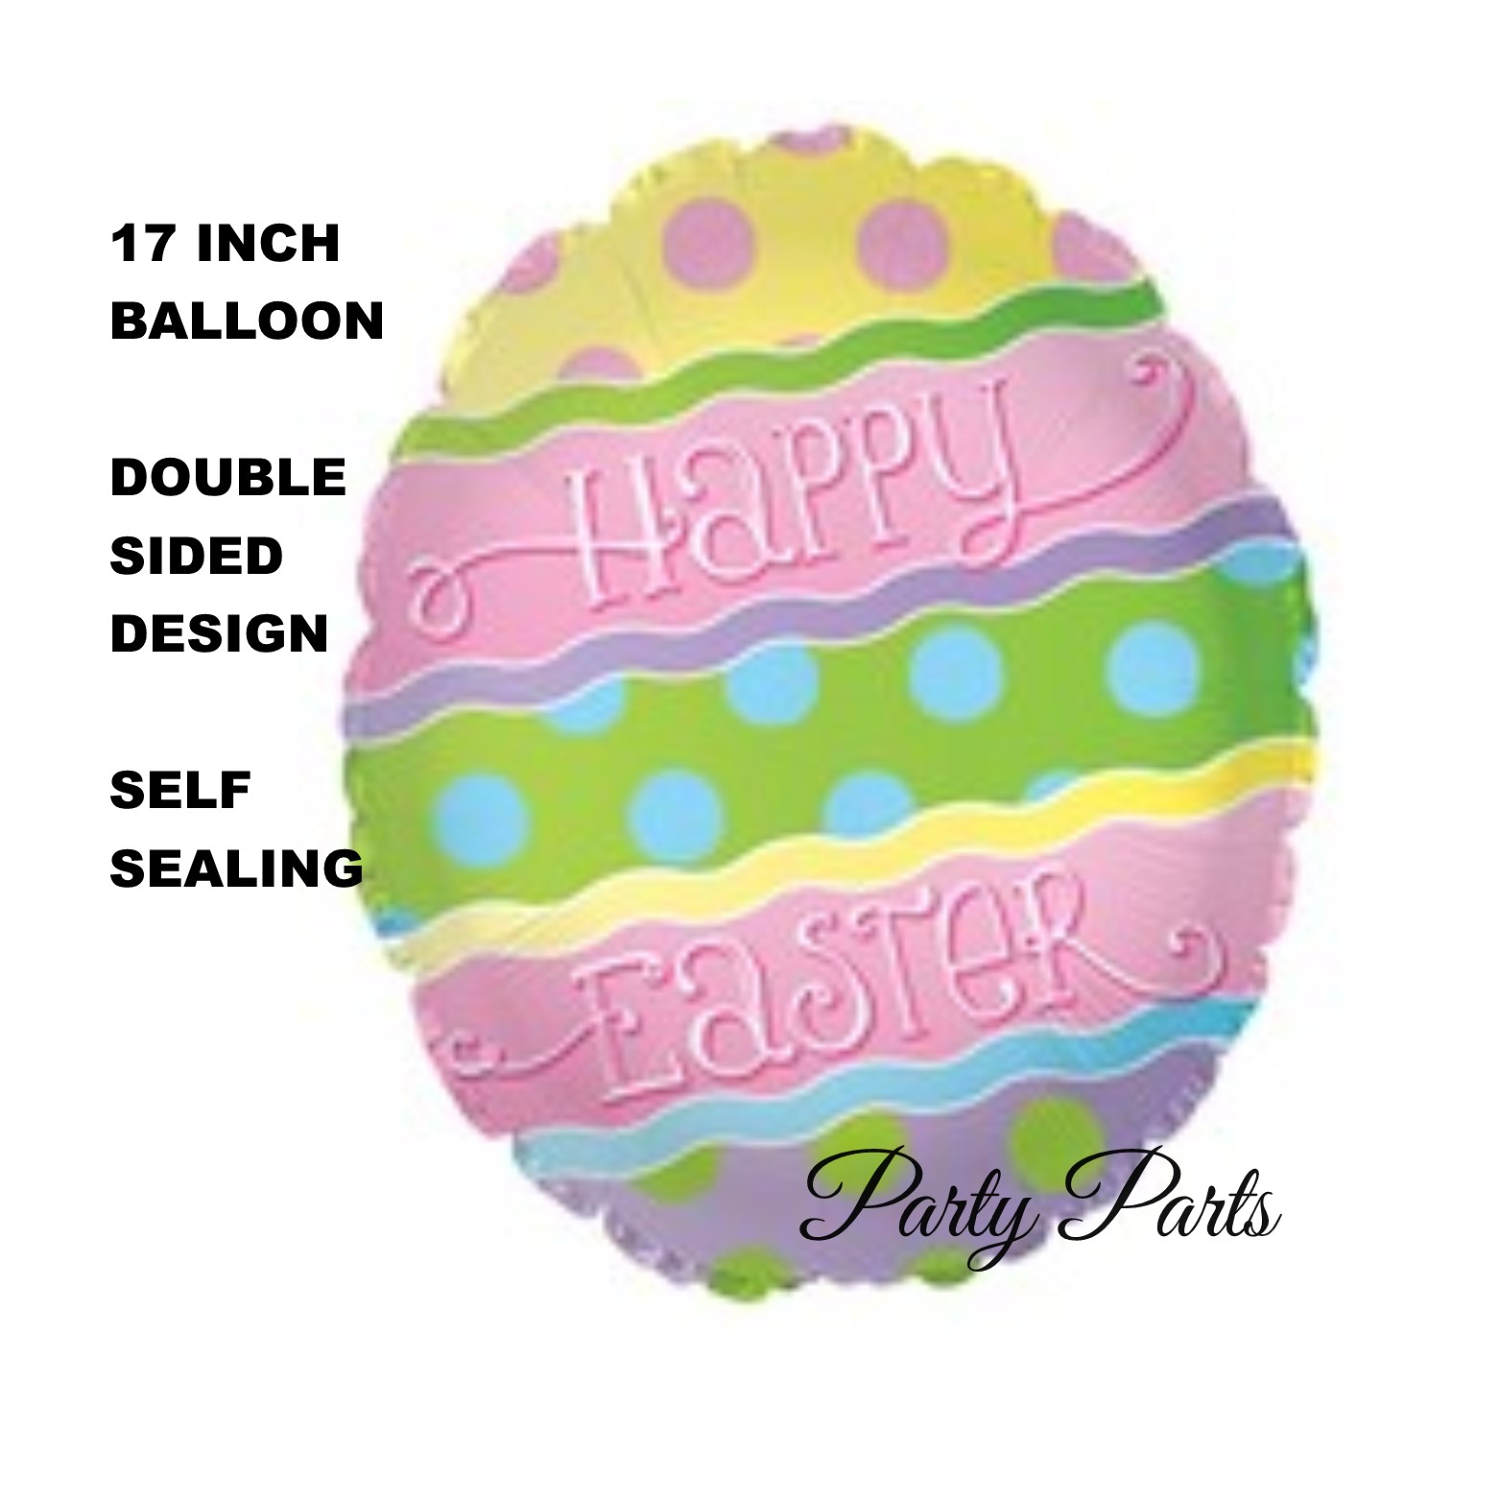 Happy Easter Balloon, Colored Easter Egg, Decorated, Party.